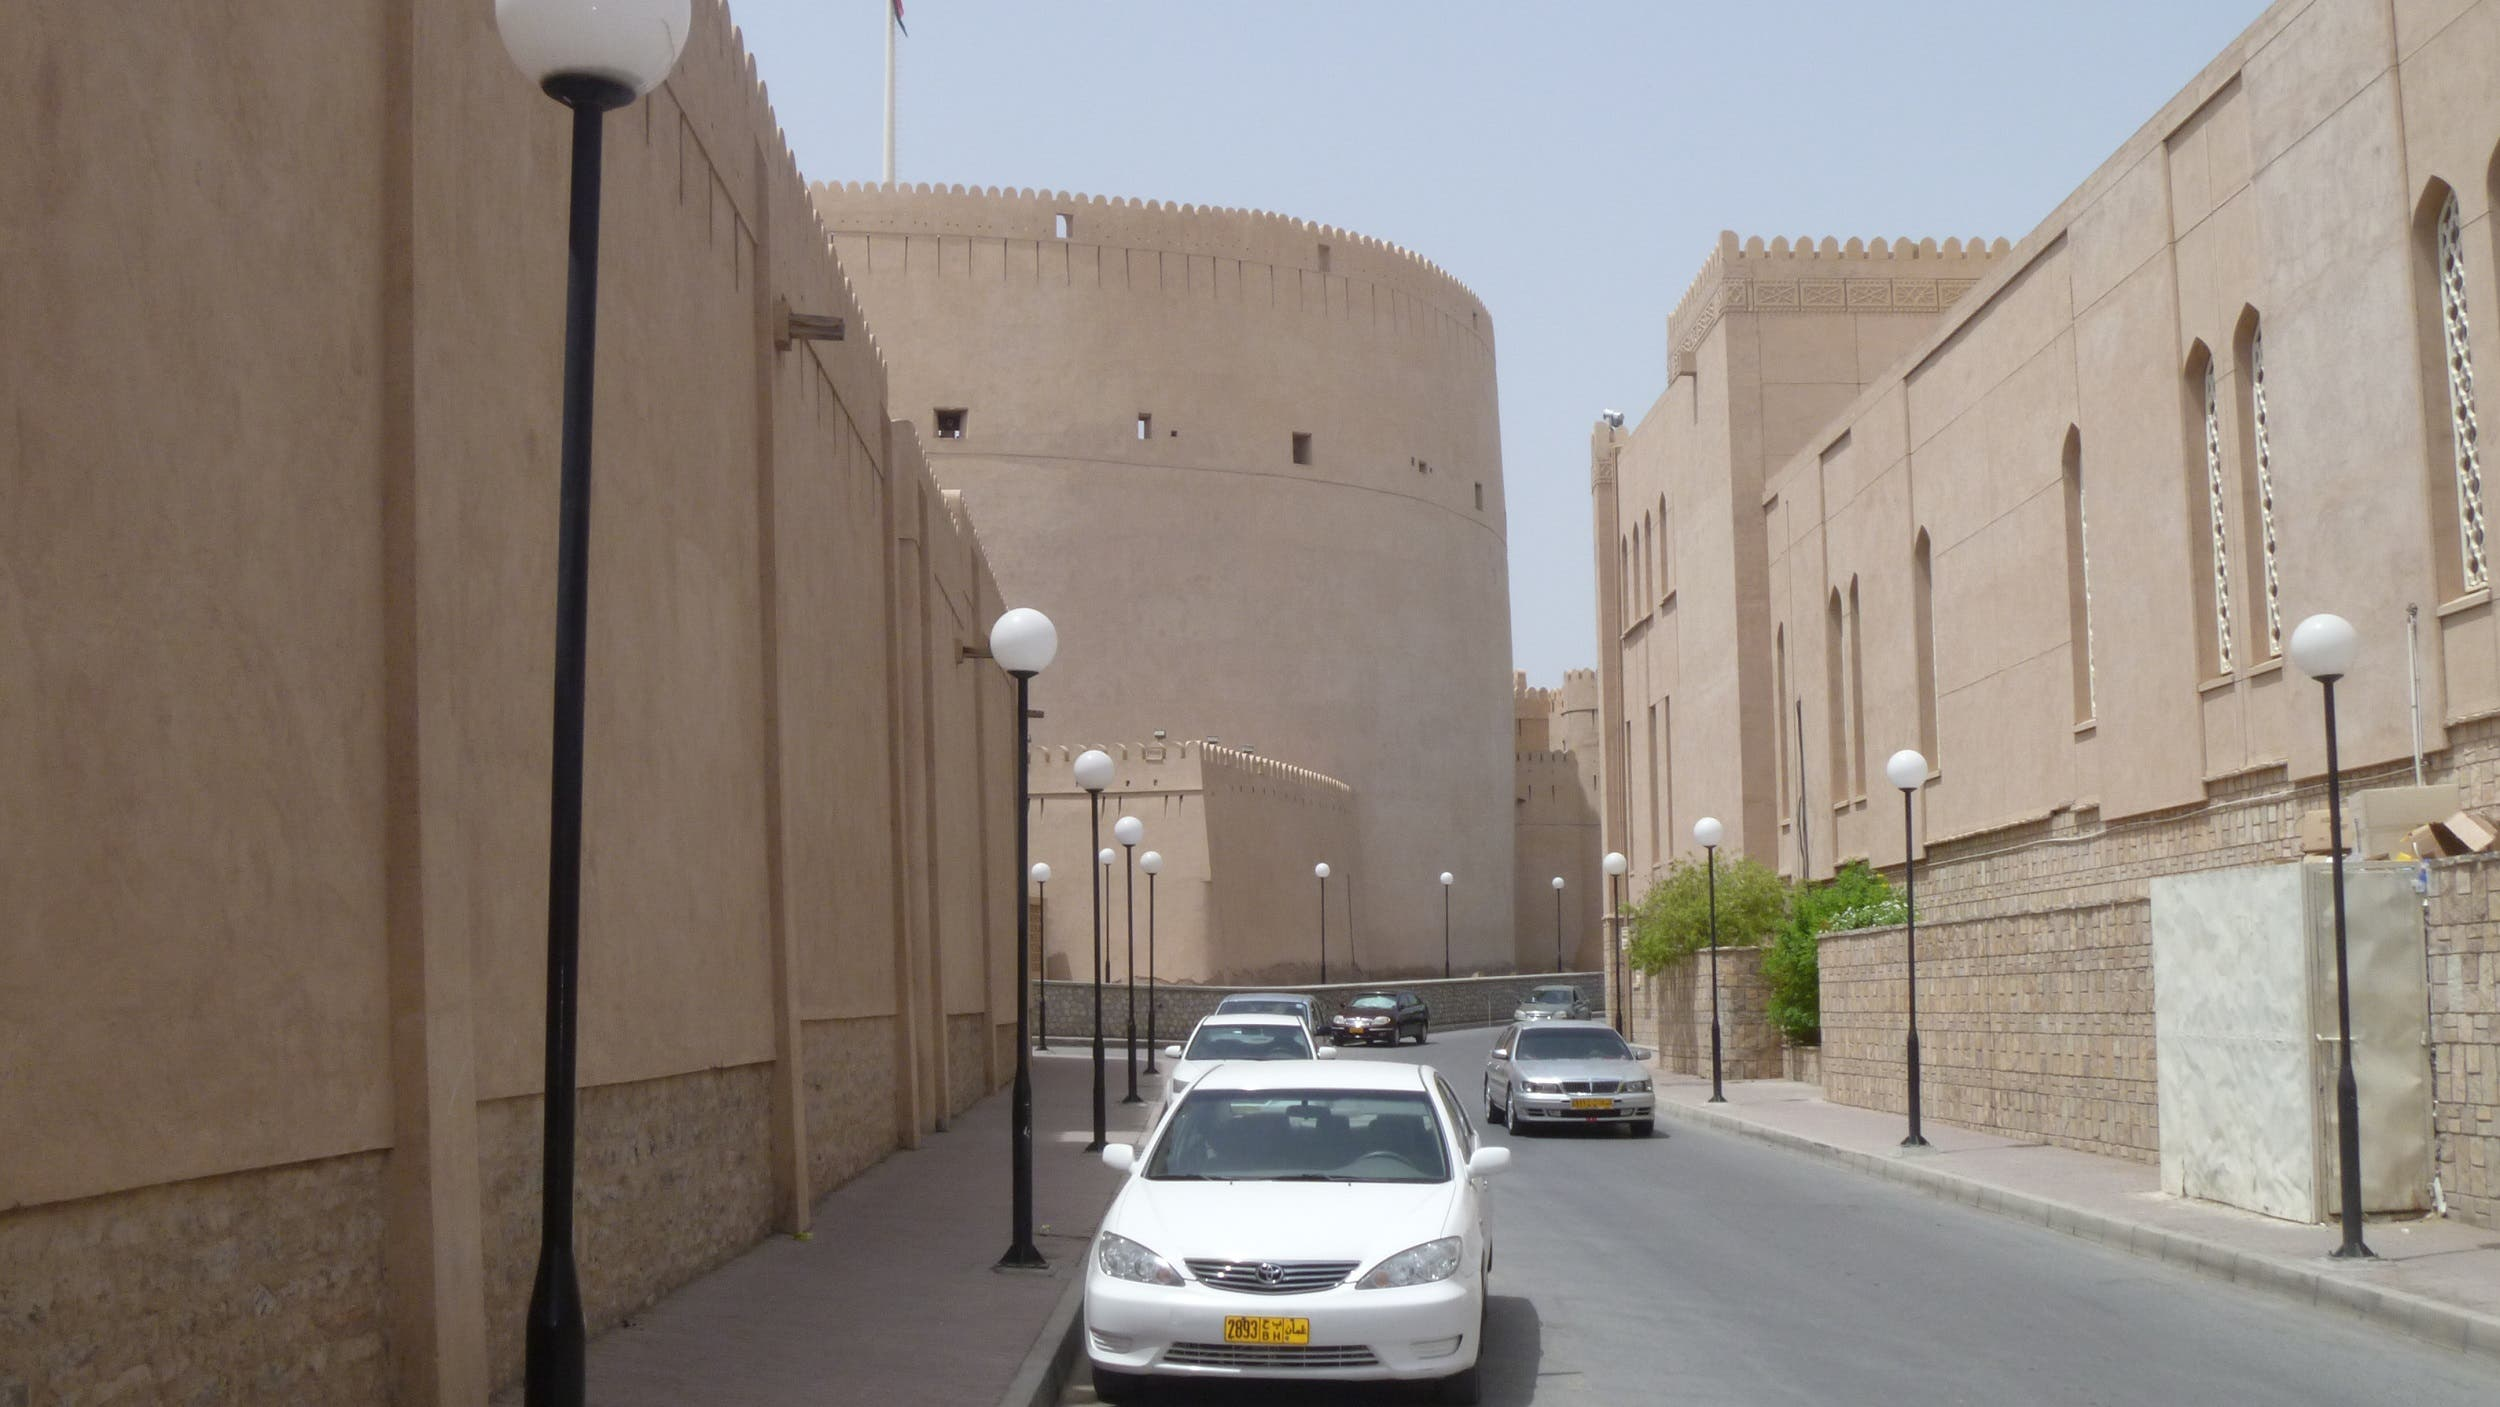 Nizwa's important role in the long history of Oman's interior region is reflected in this massive circular fort situated next to a big mosque. (Supplied)